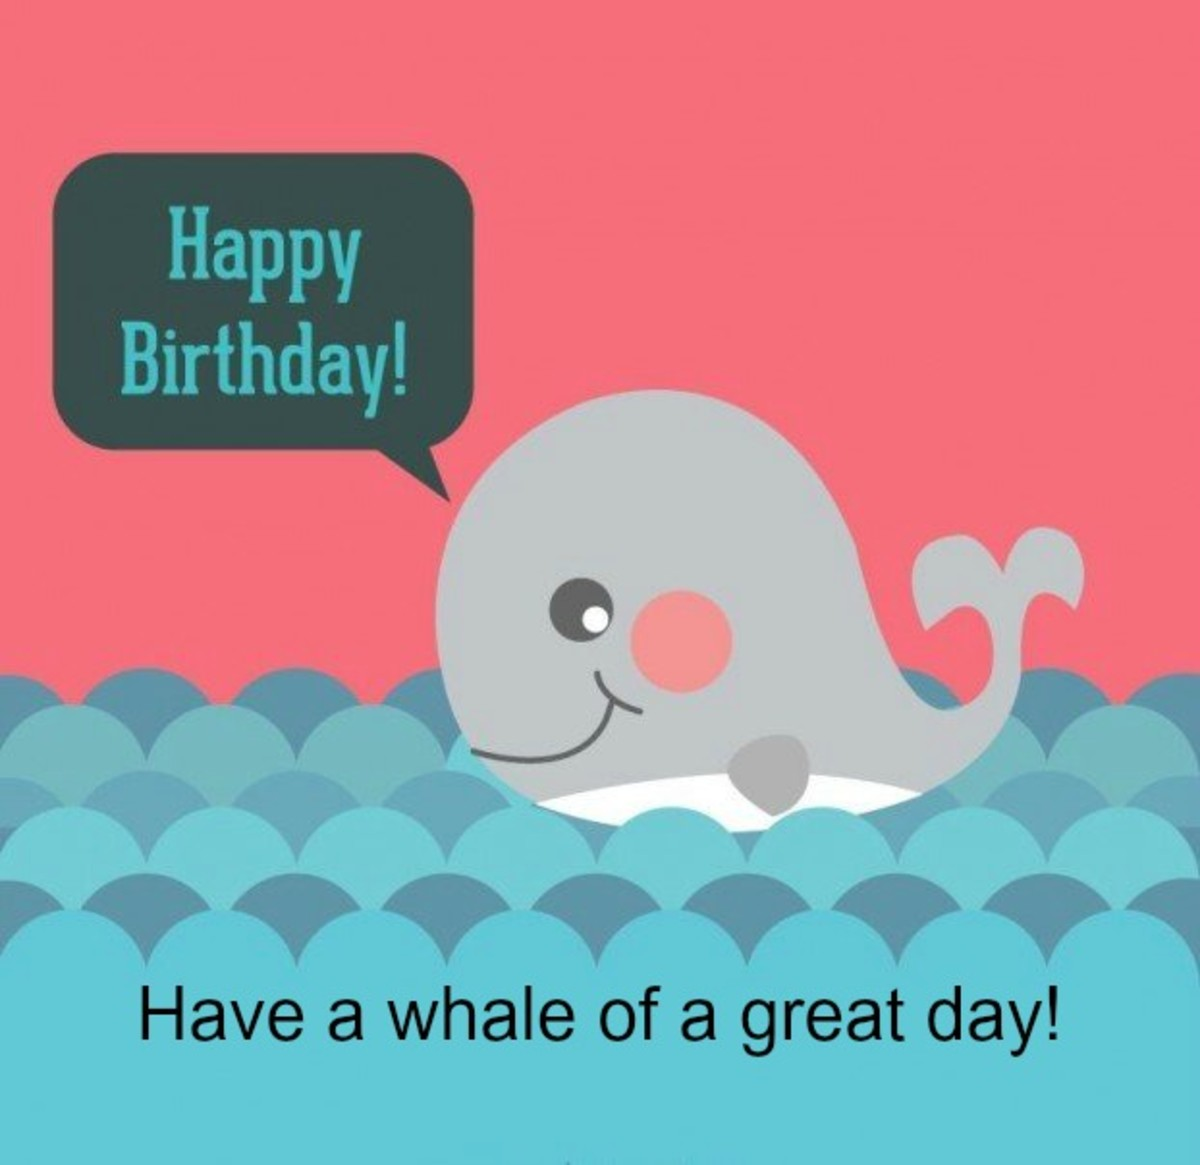 Happy Birthday Message with Whale